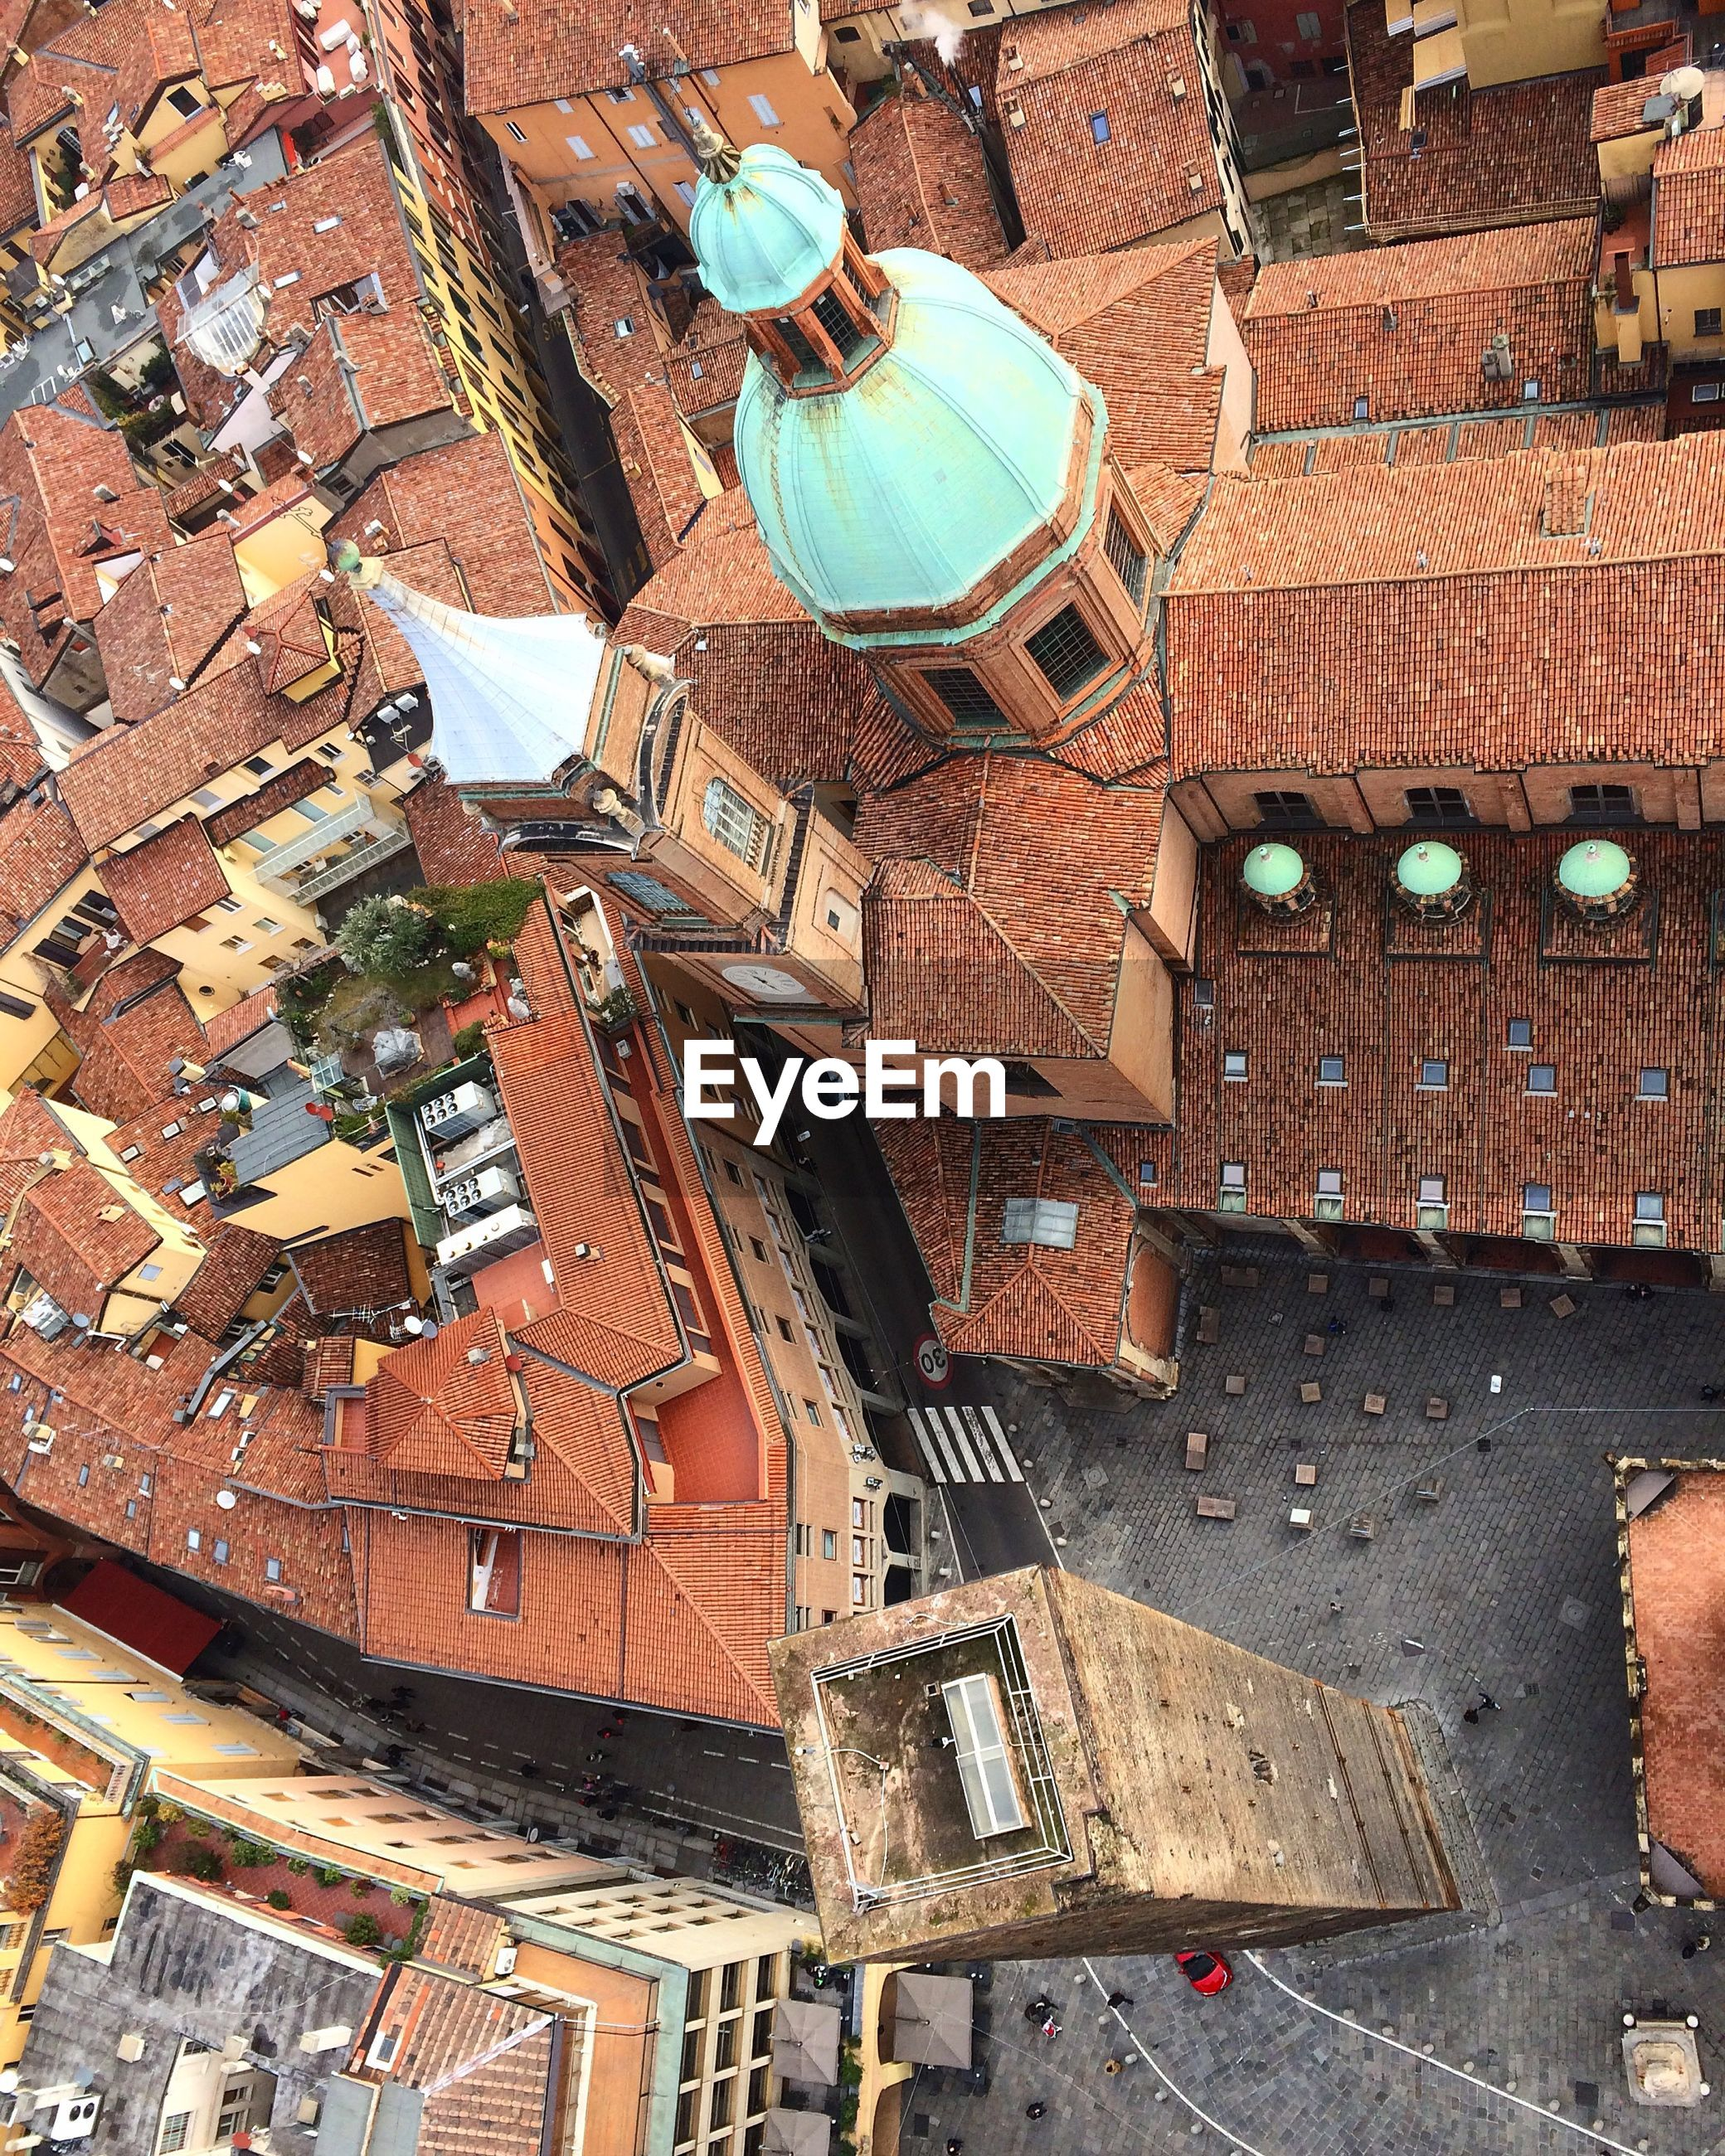 Aerial view of buildings in old town